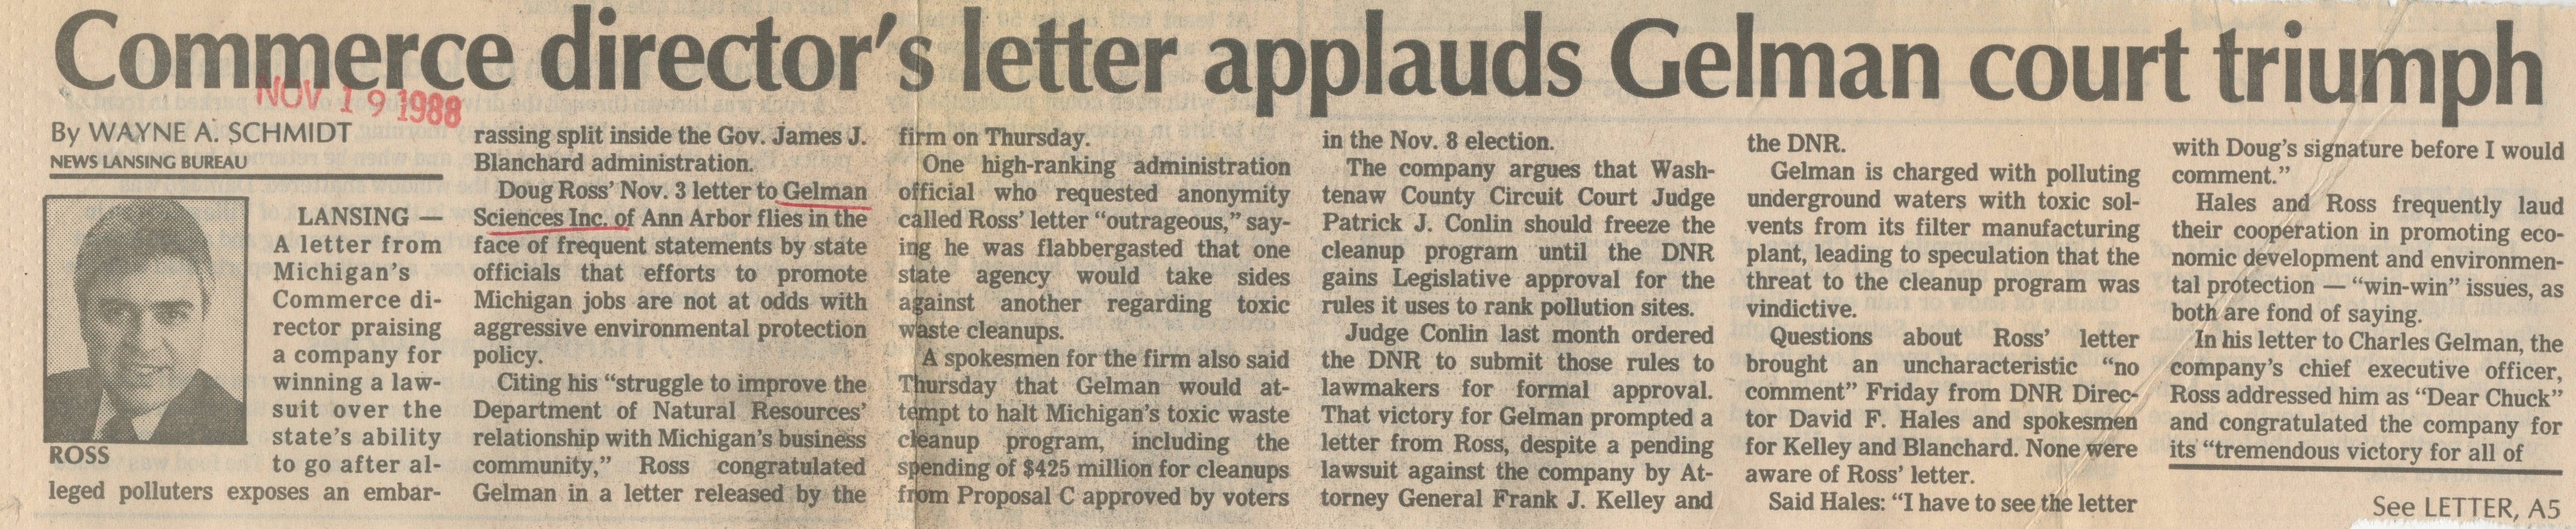 Commerce Director's Letter Applauds Gelman Court Triumph image